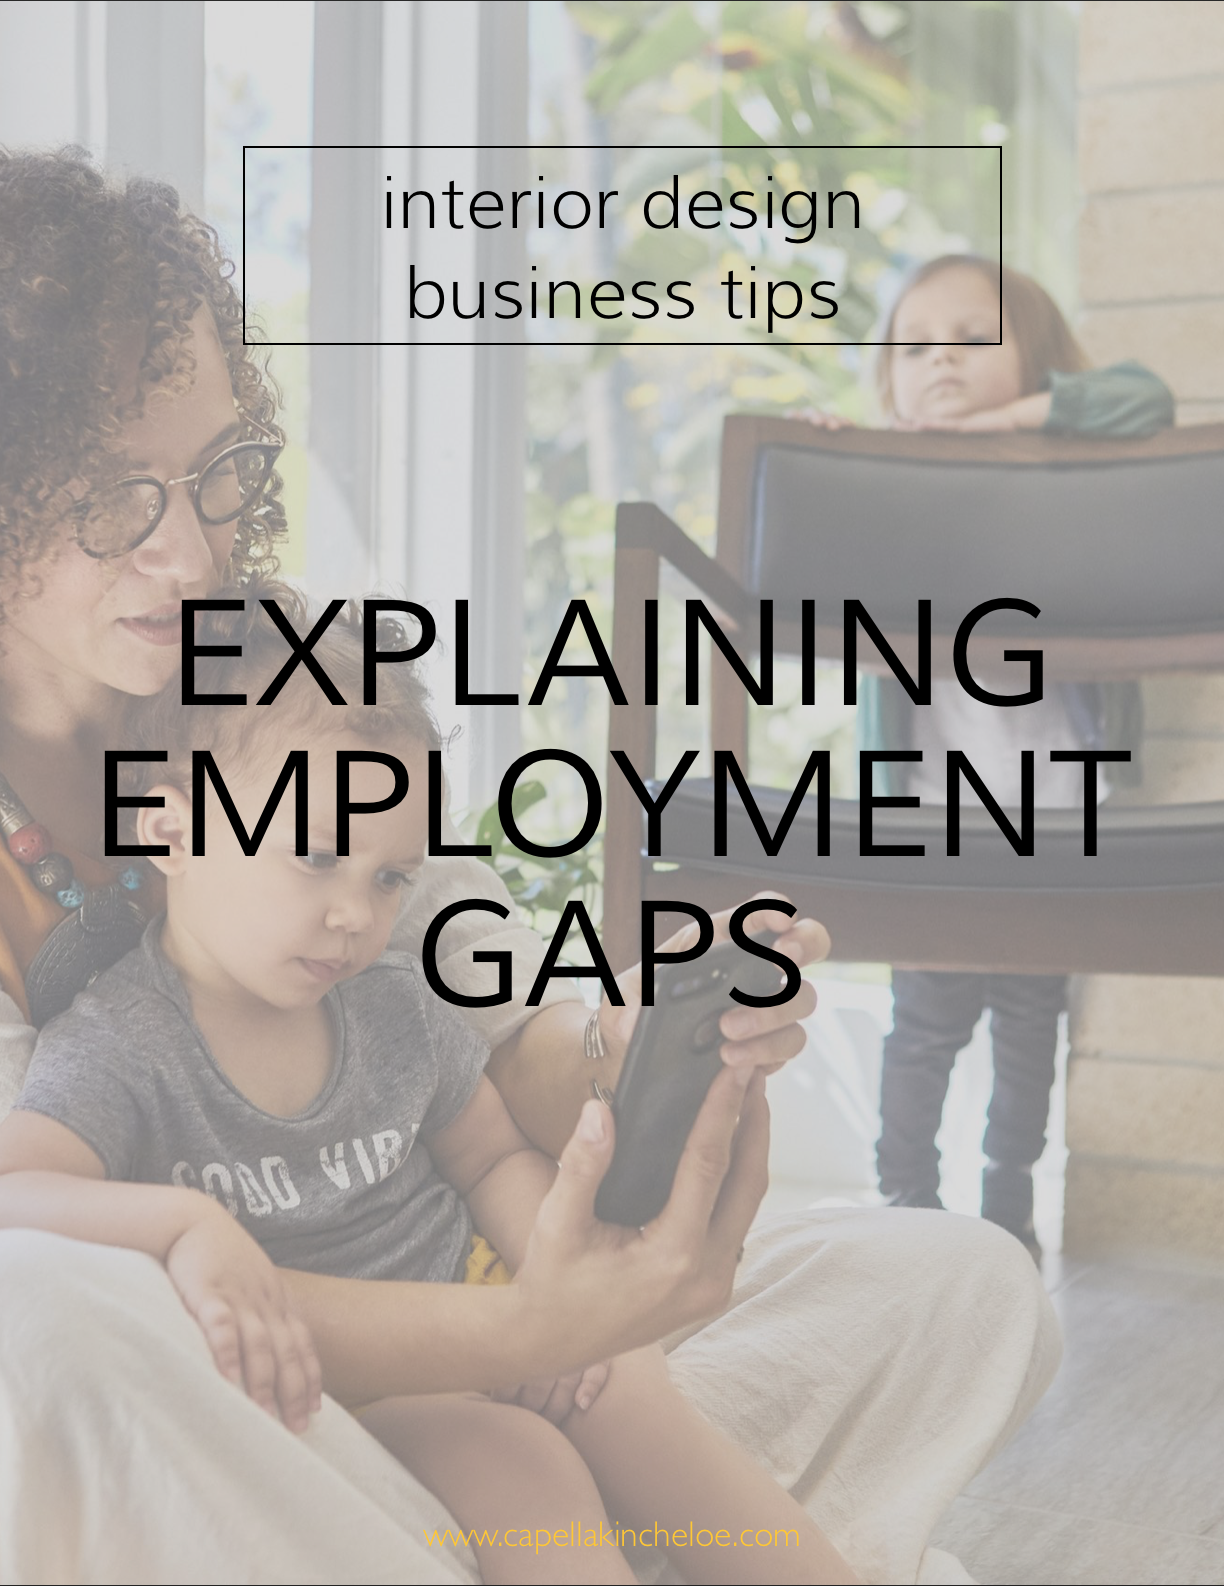 Been out of the workforce for awhile? Maybe kids, maybe education, maybe just life? How should you explain to potential employers what you were doing all that time? #interiordesignbusiness #interiordesignjob #cktradesecrets